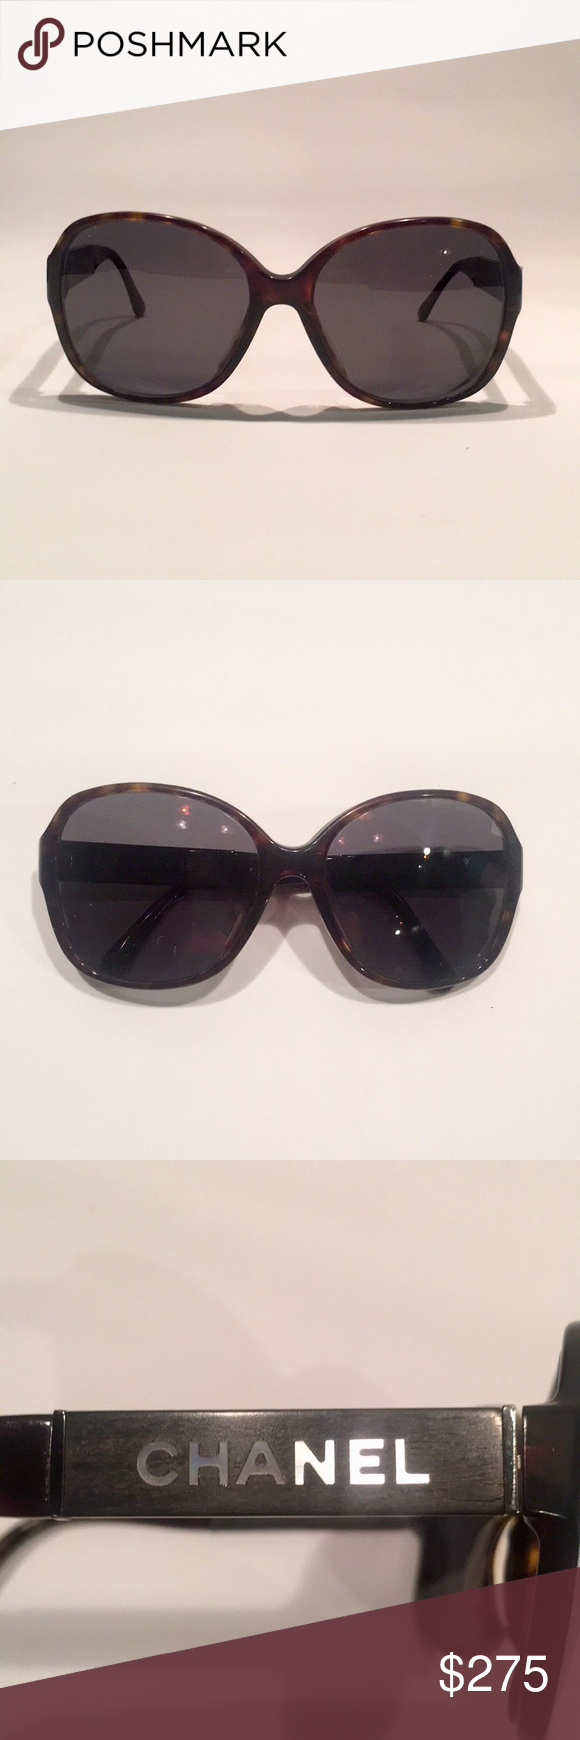 5066255728ac Chanel Mother of Pearl Logo Sunglasses Very very gently used authentic Chanel  Sunglasses, style#5198. These feature a black acetate frame with gradient  ...